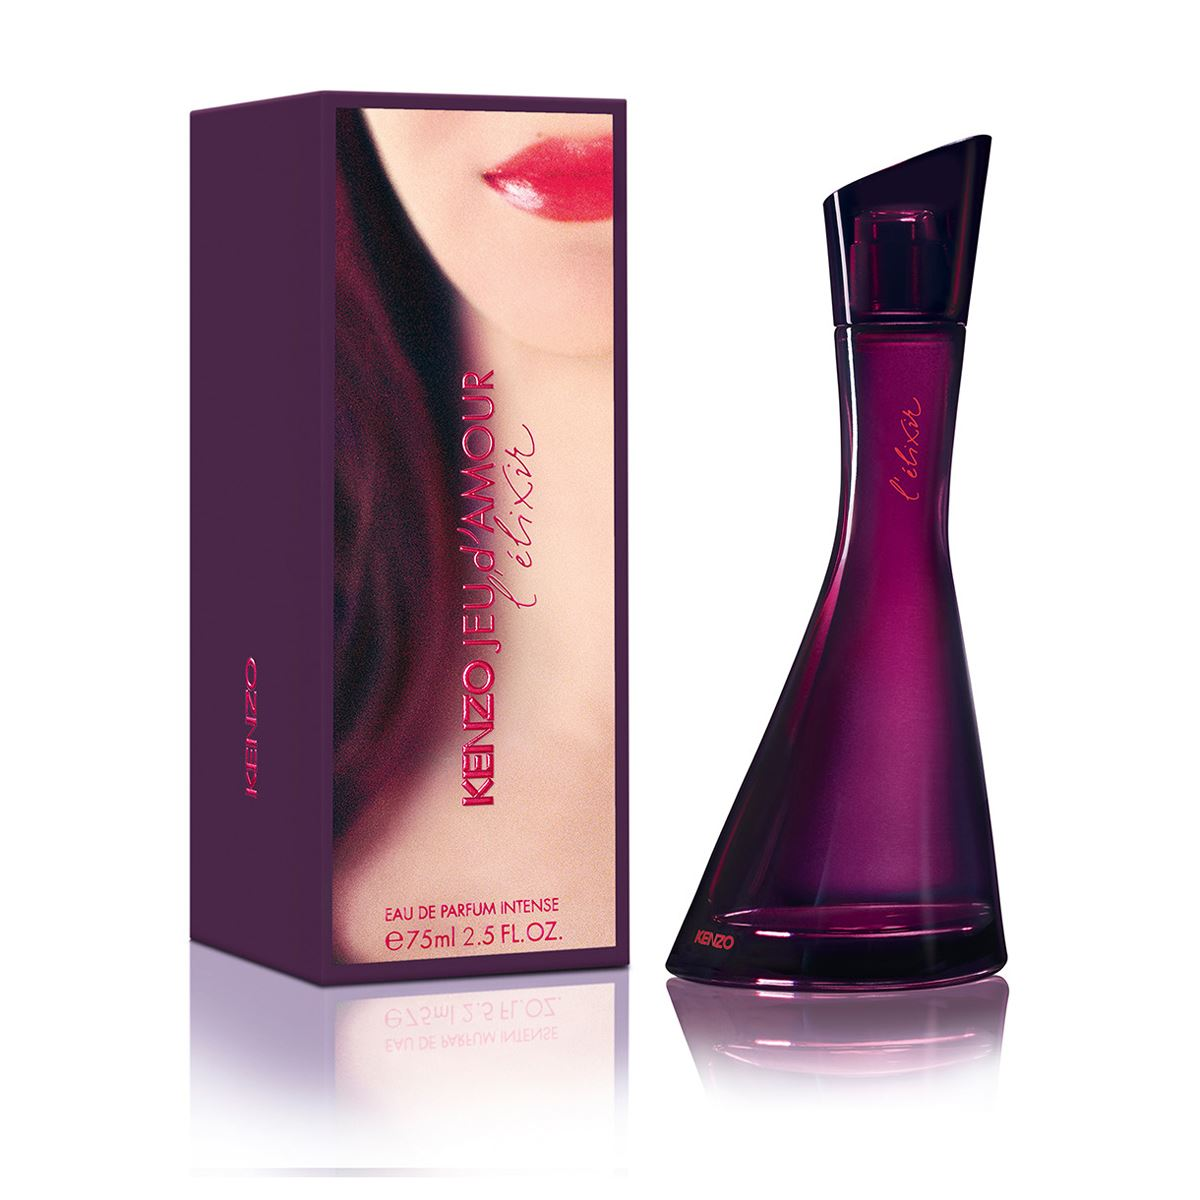 Details About Jeu D Amour L Elixir By Kenzo Eau De Parfum Intense For Women S 2 5 Fl Oz 75 Ml